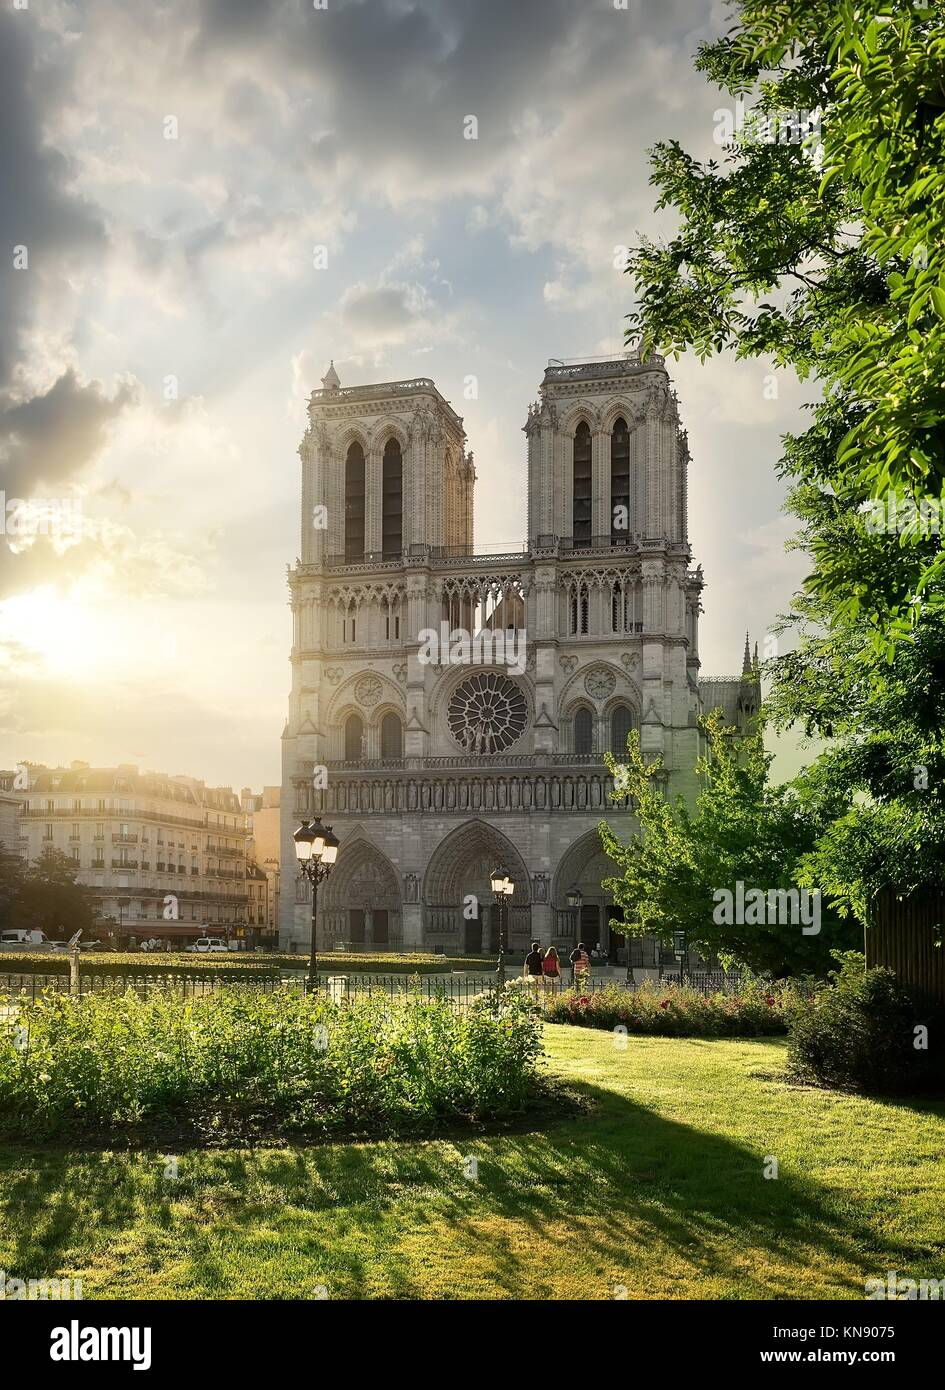 Notre Dame de Paris and green meadow at sunrise, France. - Stock Image